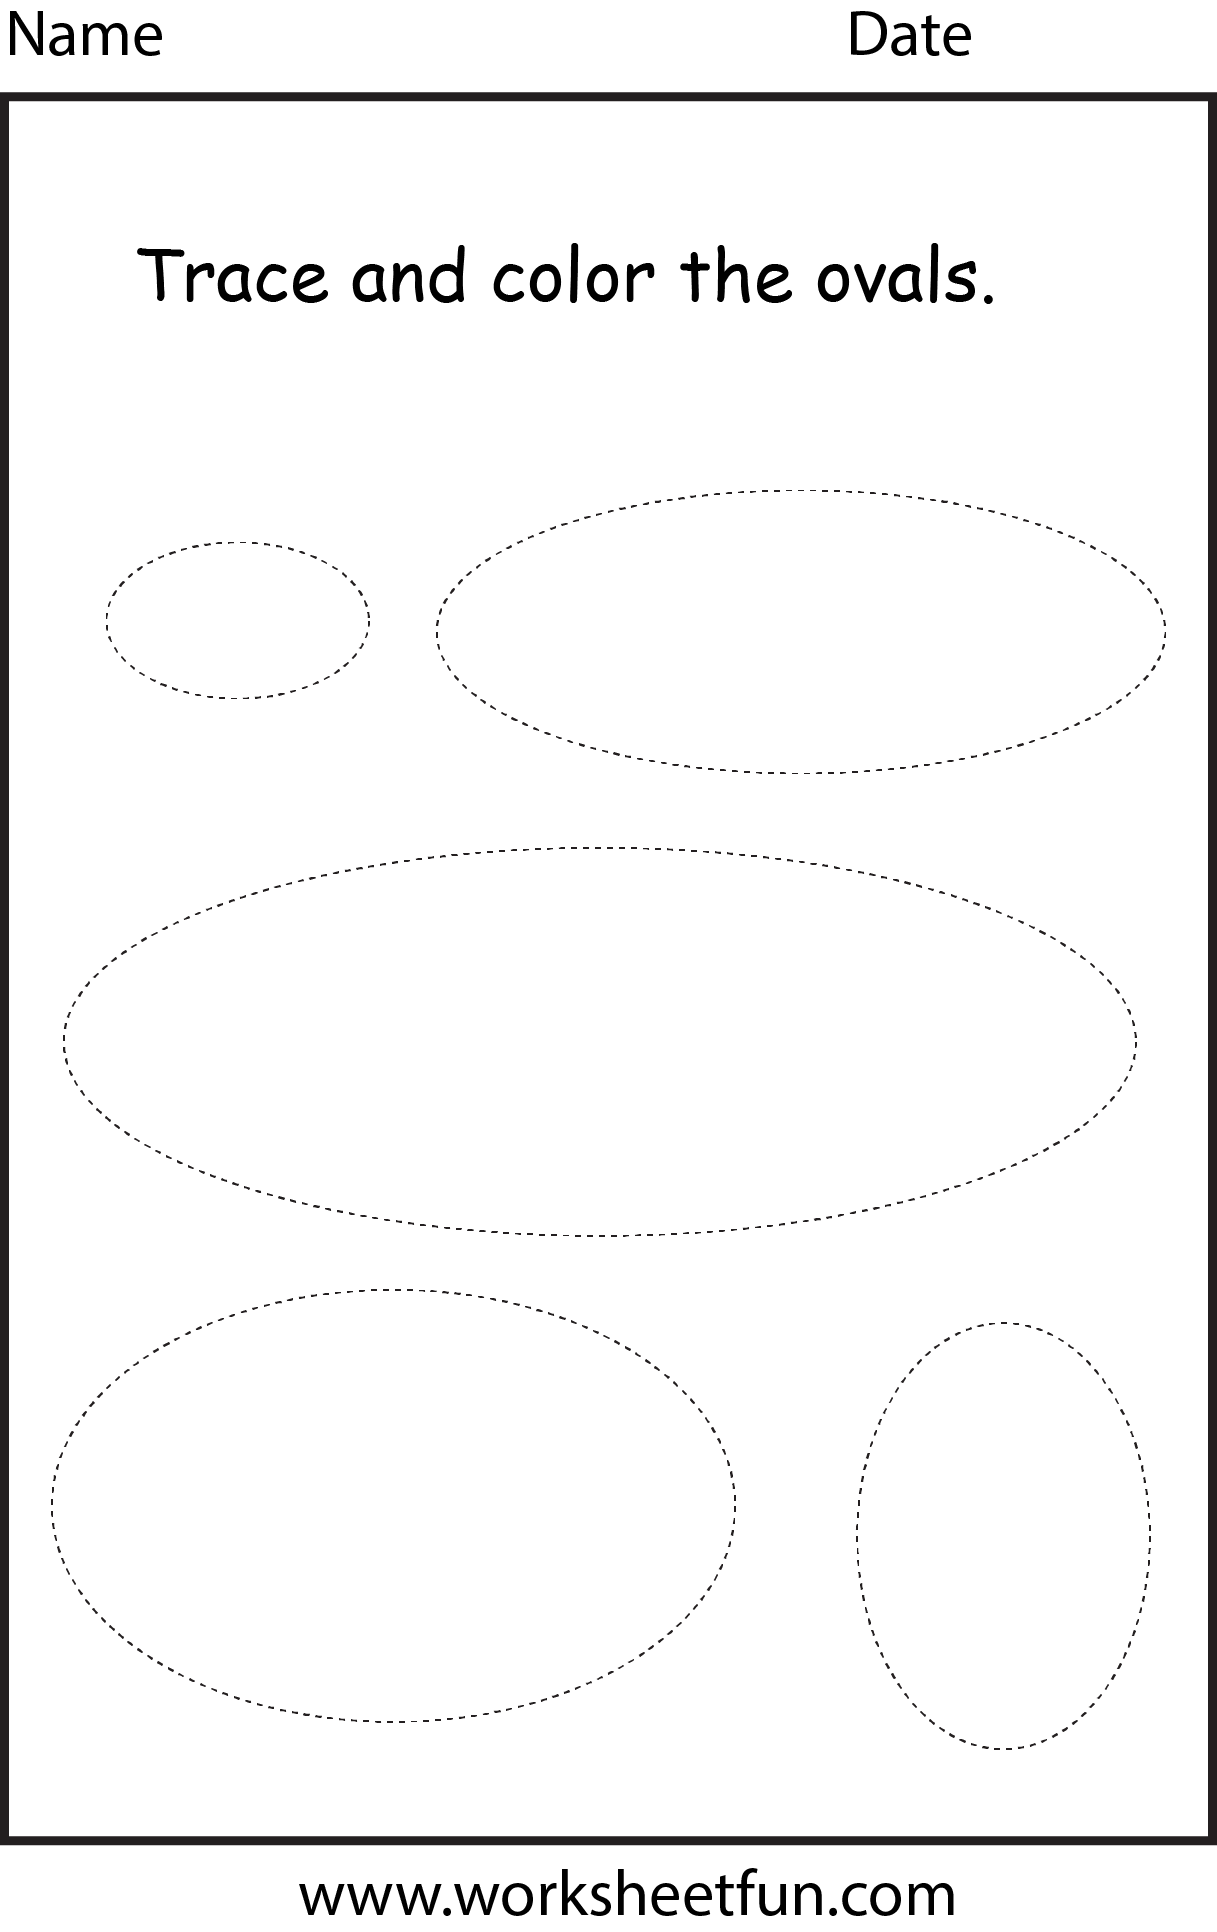 Shape Oval 1 Worksheet Free Printable Worksheets